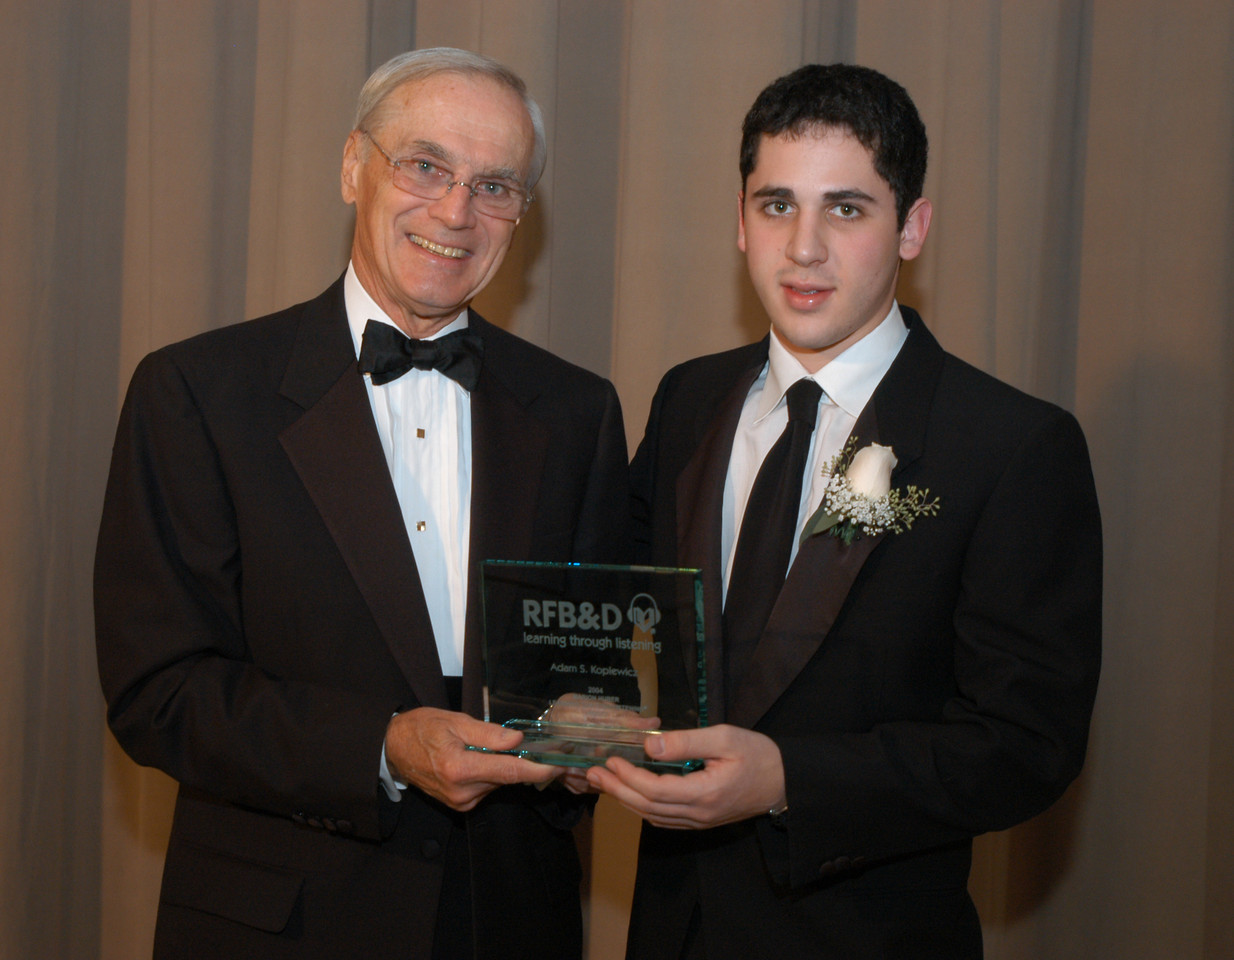 RFB&D President & CEO Richard O. Scribner presents a National Achievement Award to Adam Koplewicz.